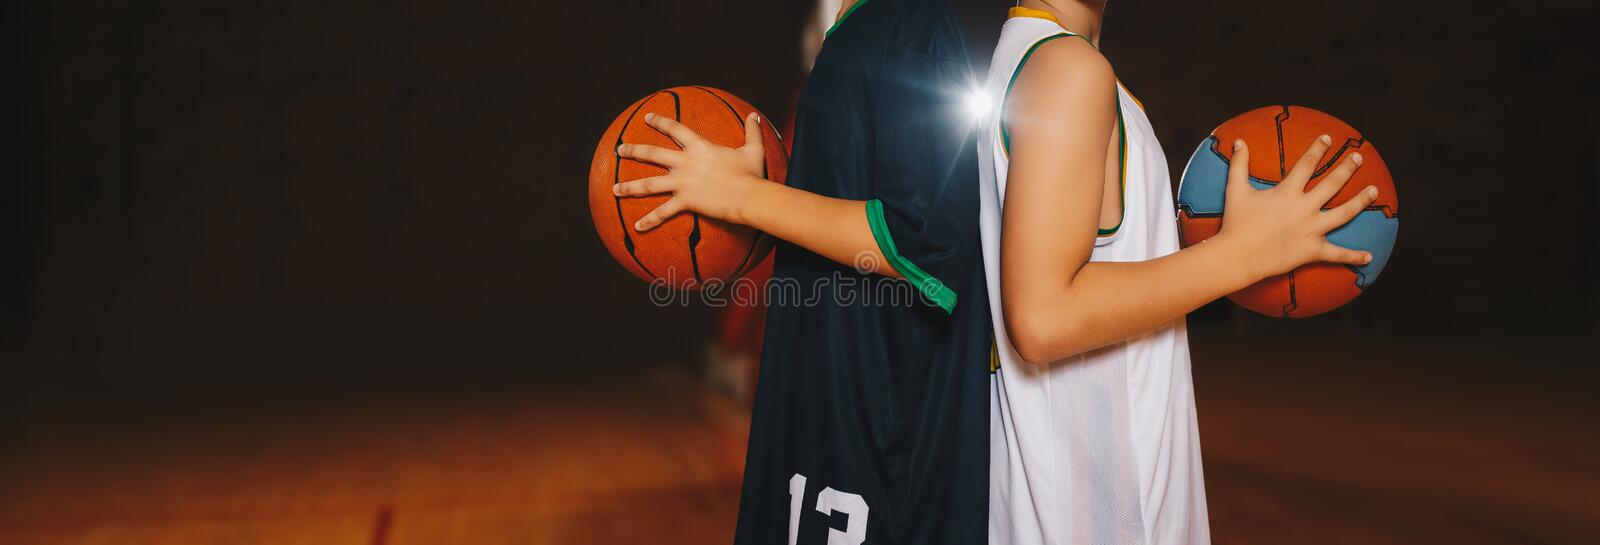 Two Boys Basketball Team Players Holding Basketballs on the Wooden Court. Basketball Training For Kids. Horizontal Background of Youth Basketball Players, Copy stock photo